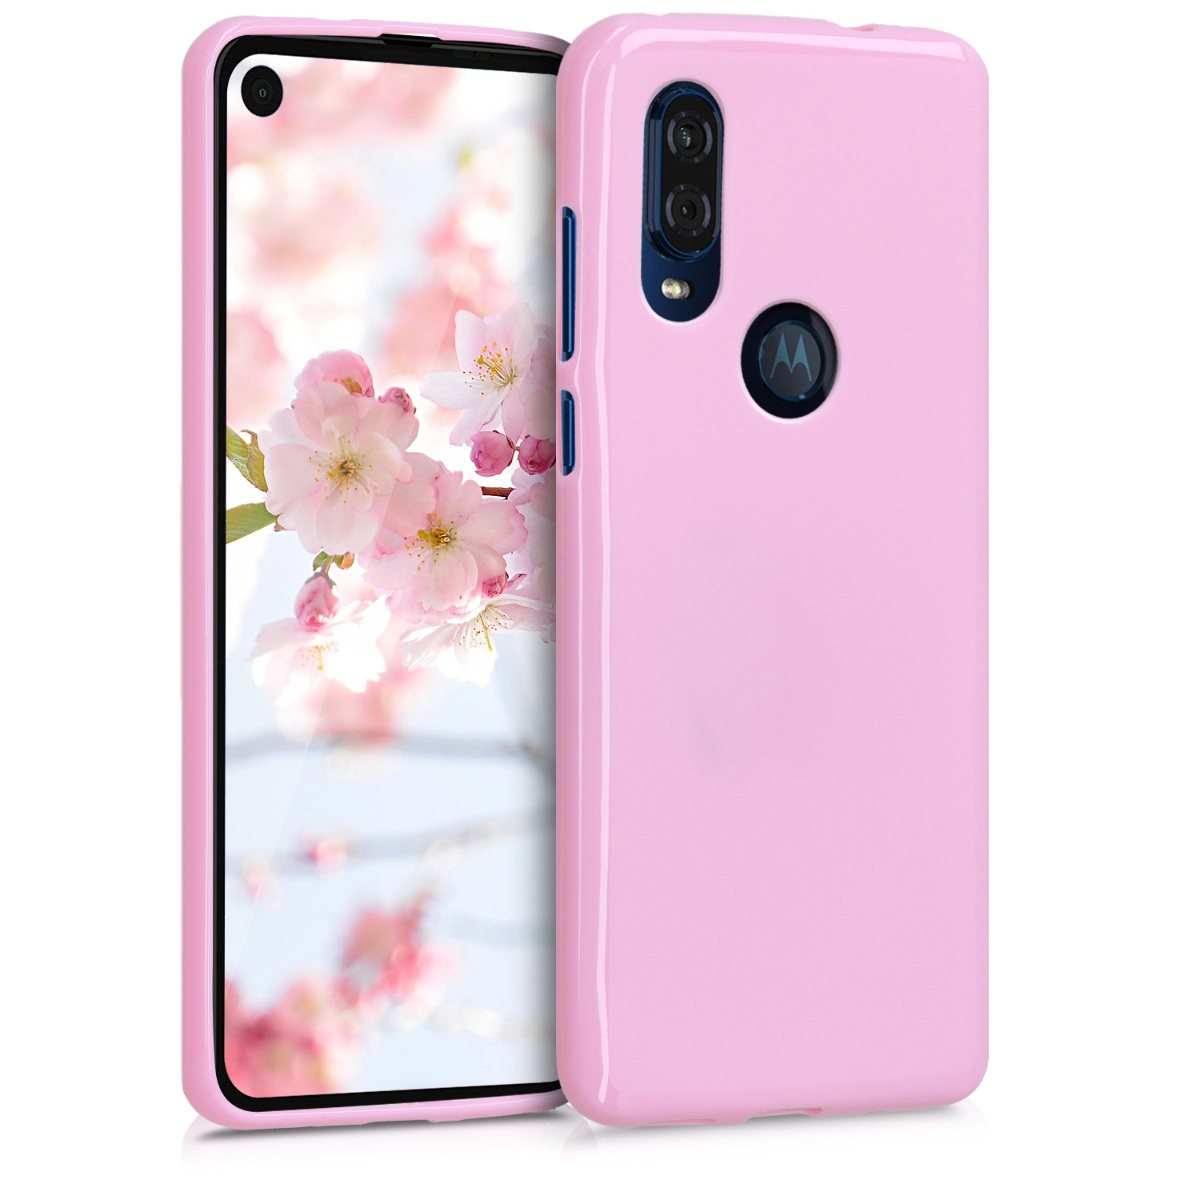 KW Θήκη Σιλικόνης Motorola One Vision - Dusty Pink (48852.10)